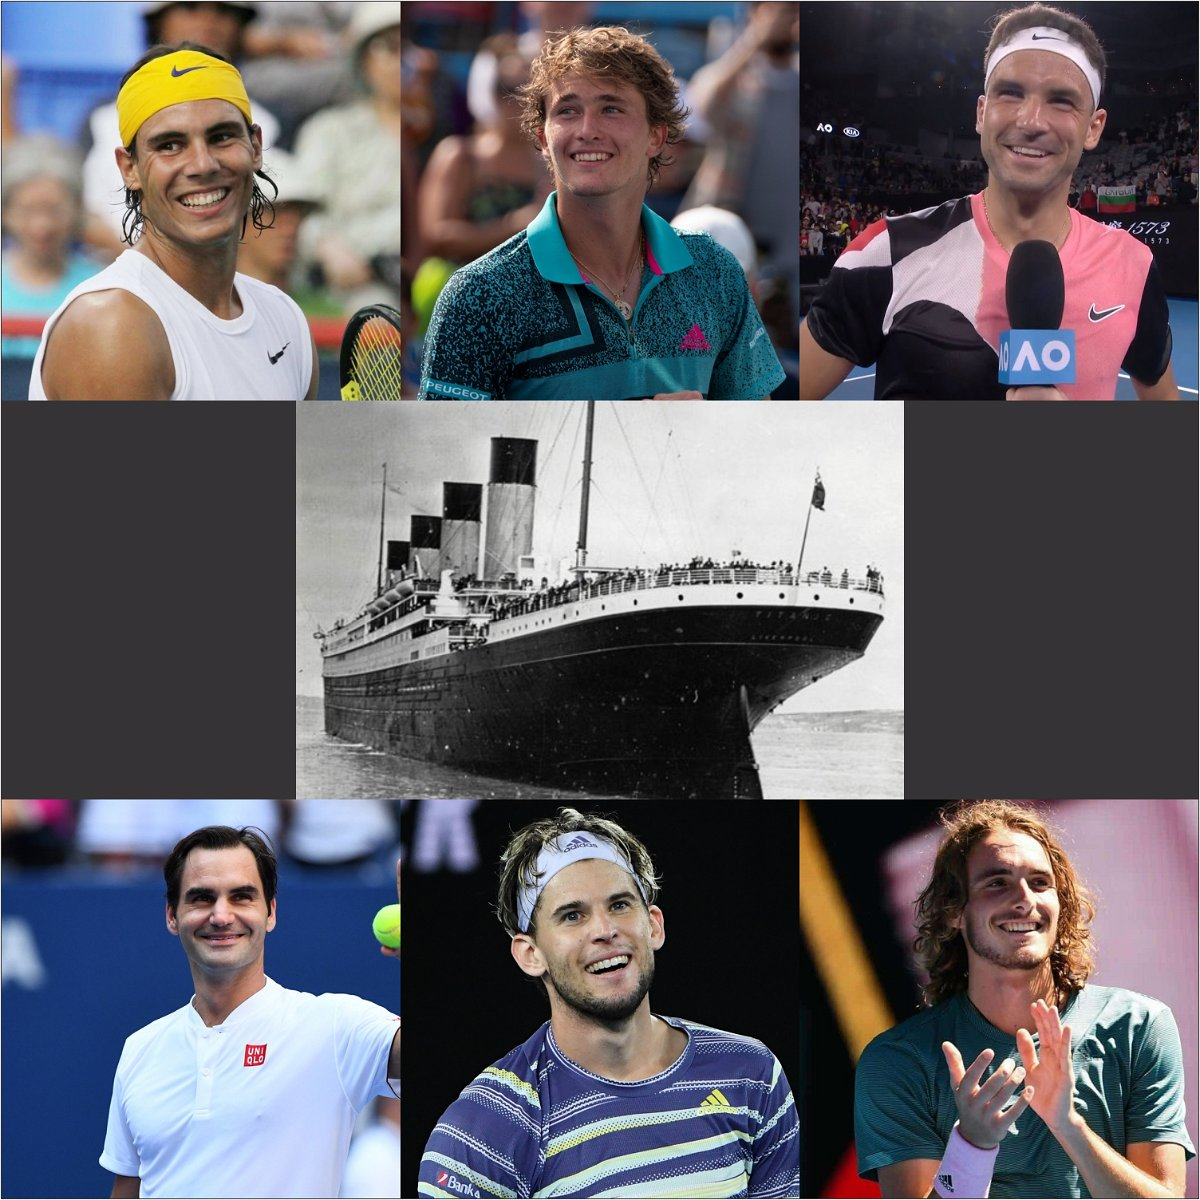 What If Roger Federer, Rafael Nadal And Other Tennis Stars Were On The Titanic? thumbnail